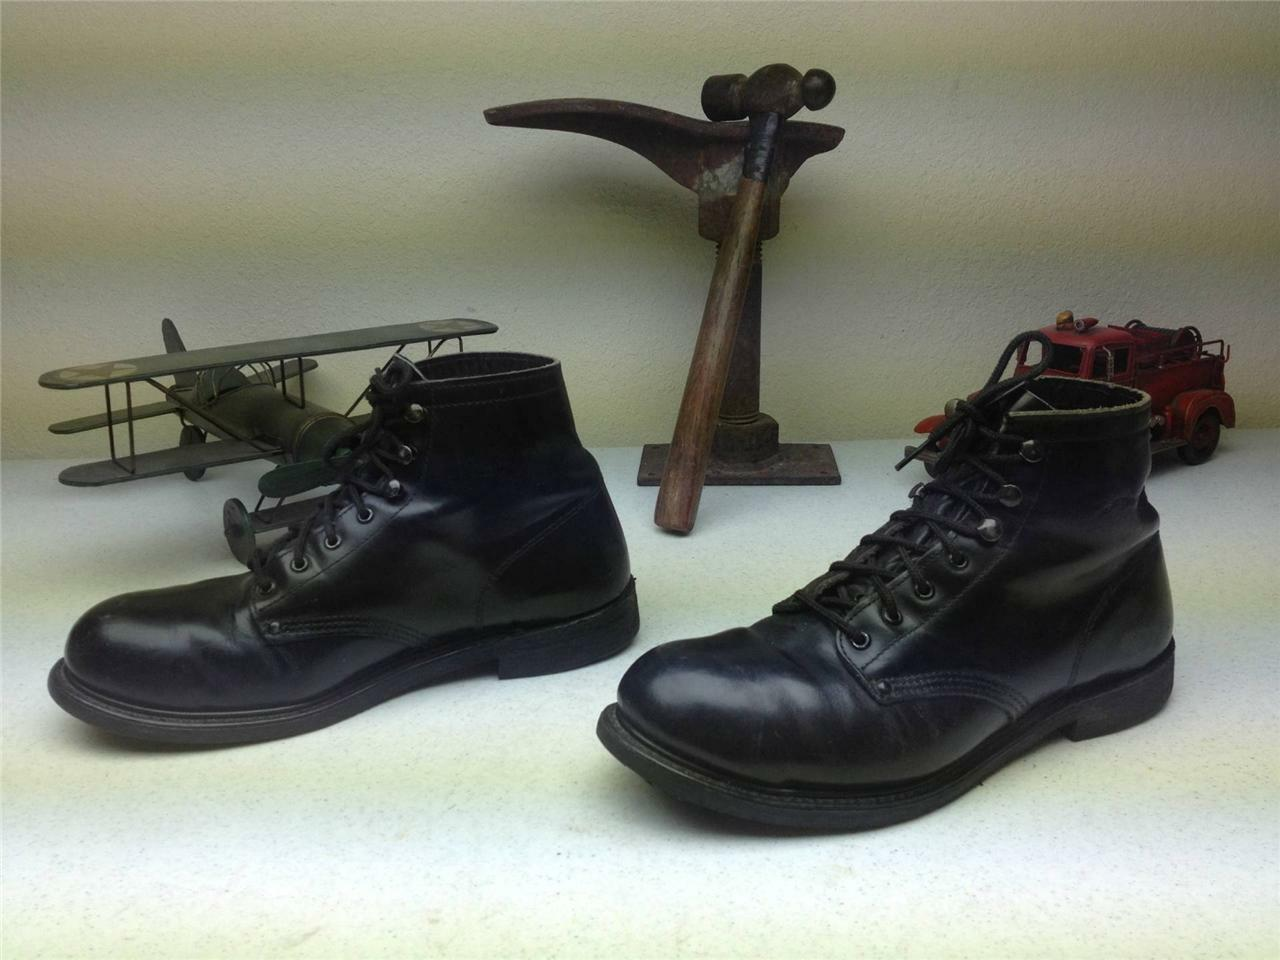 CAROLINA MADE IN USA RED BIRD BLACK LEATHER STEEL TOE DISTRESSED LACE UP 9.5 D